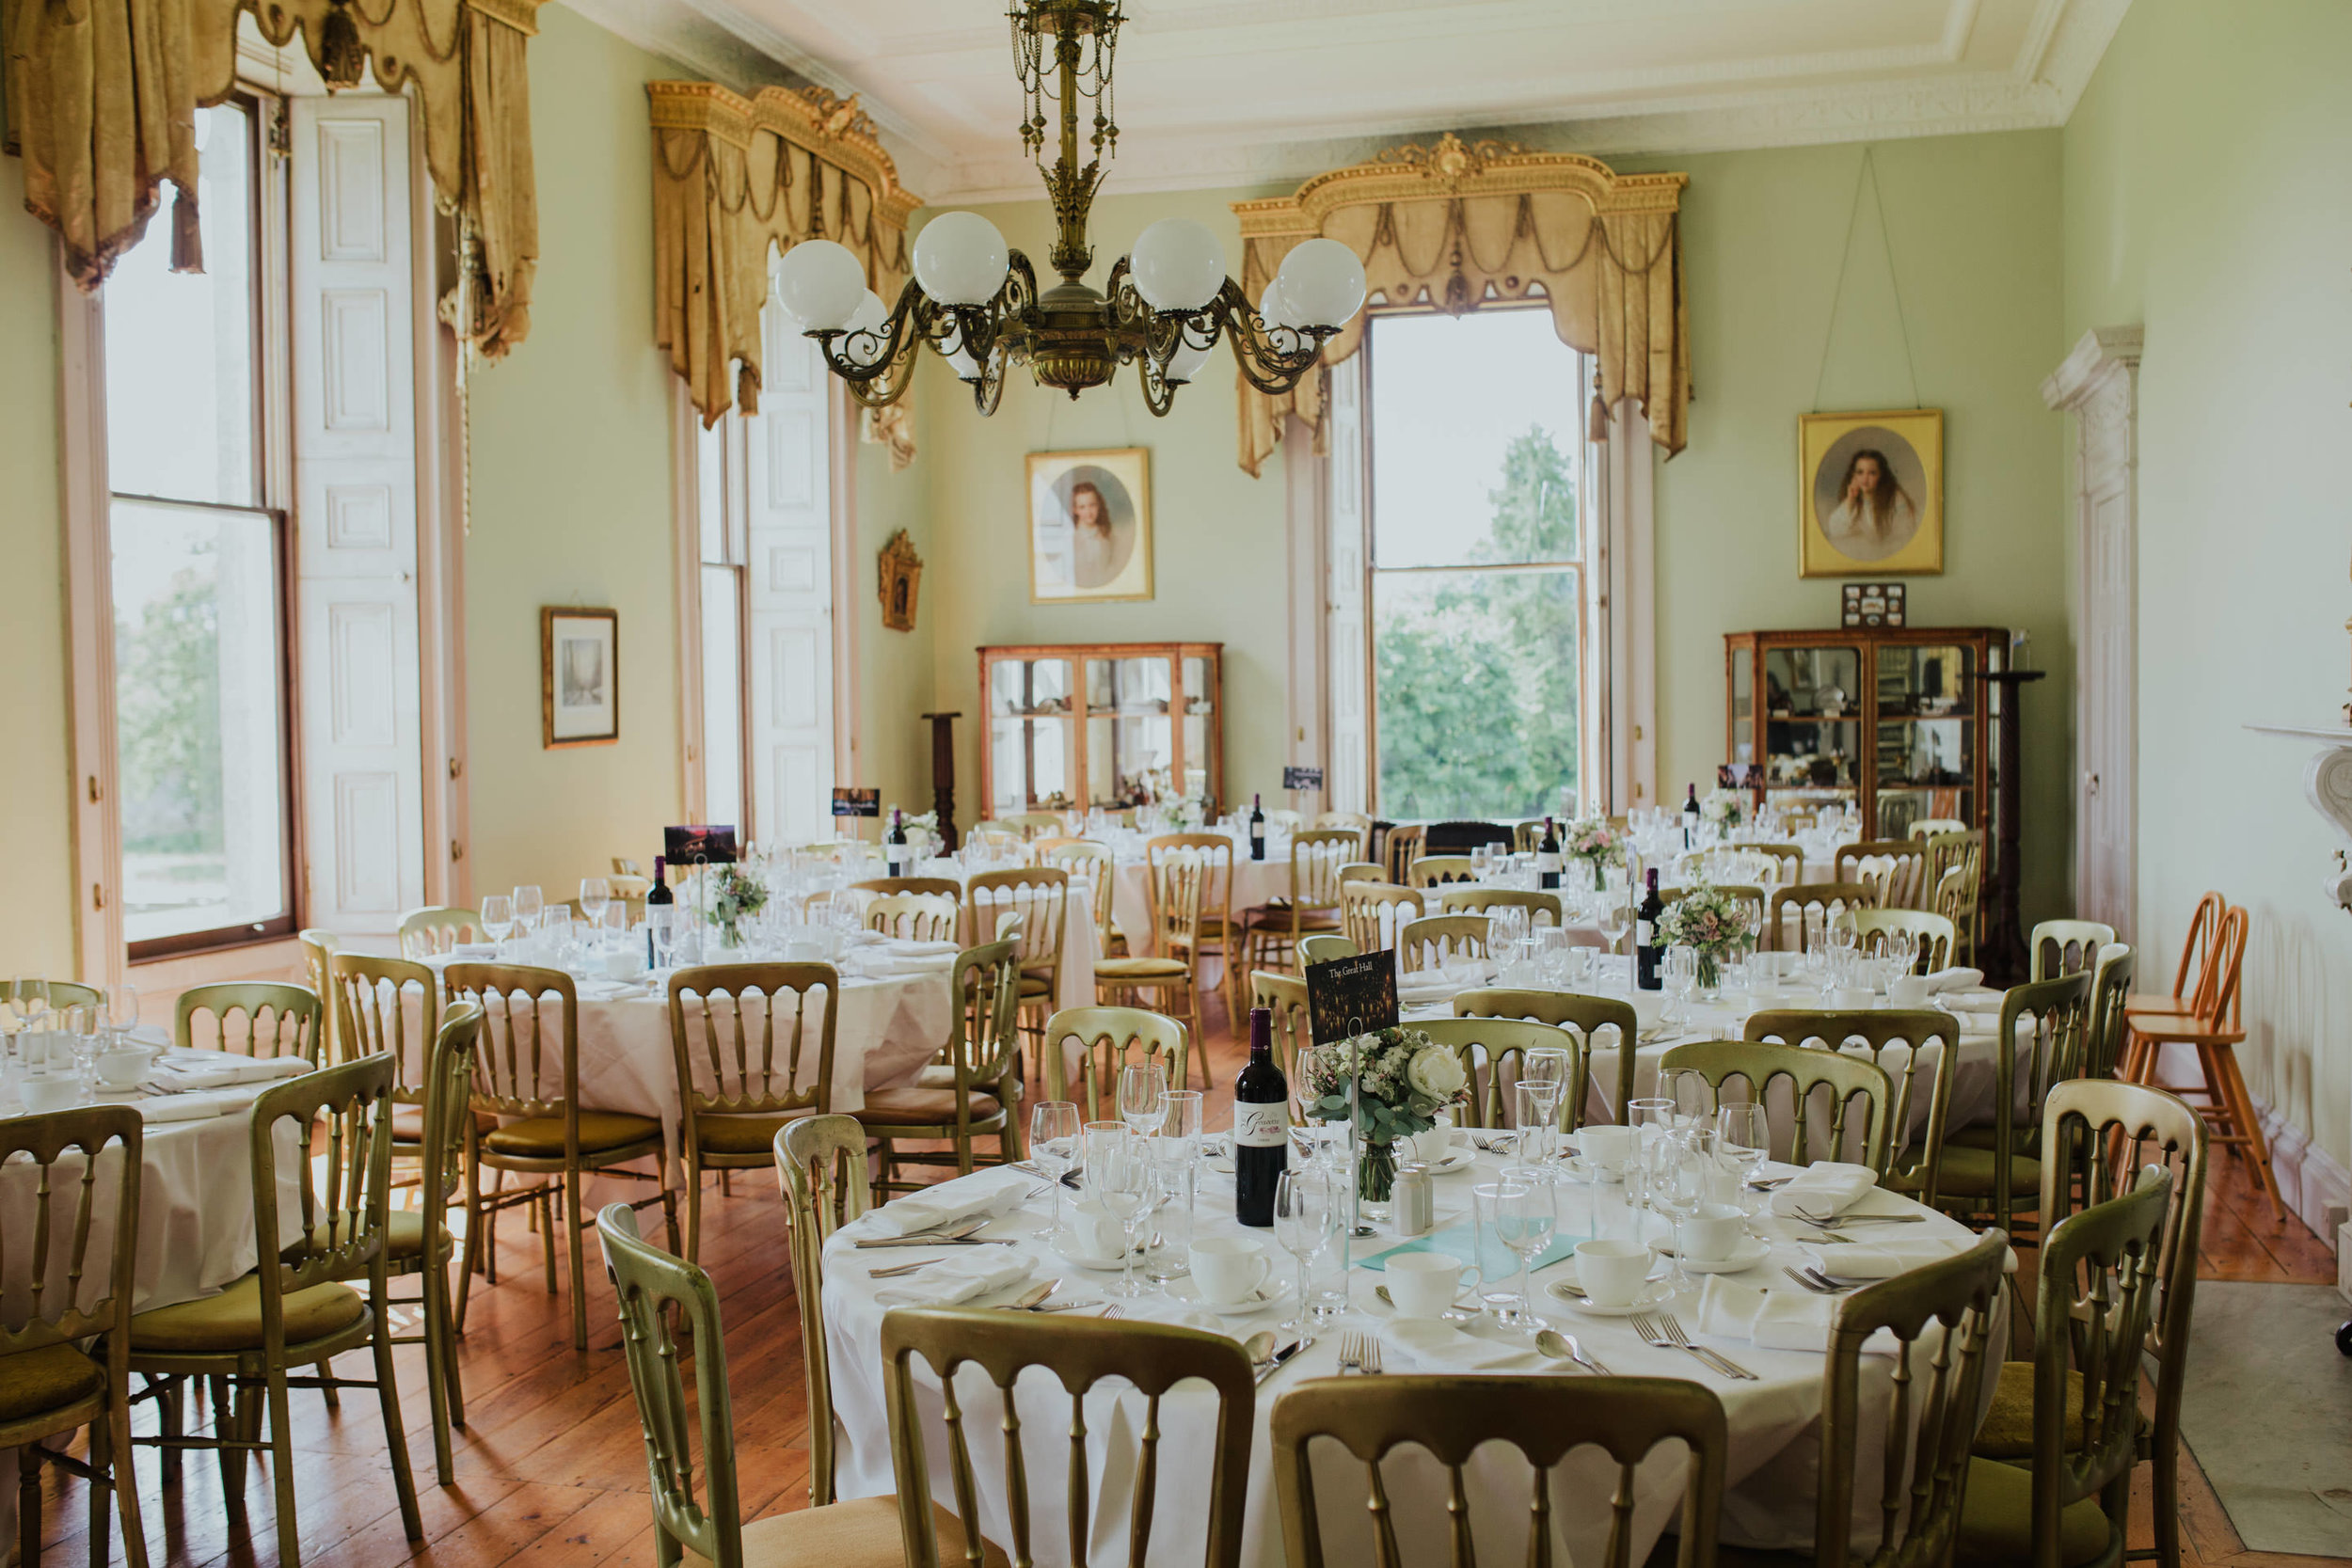 a+s_temple_house_sligo_wedding_livia_figueiredo_266.jpg